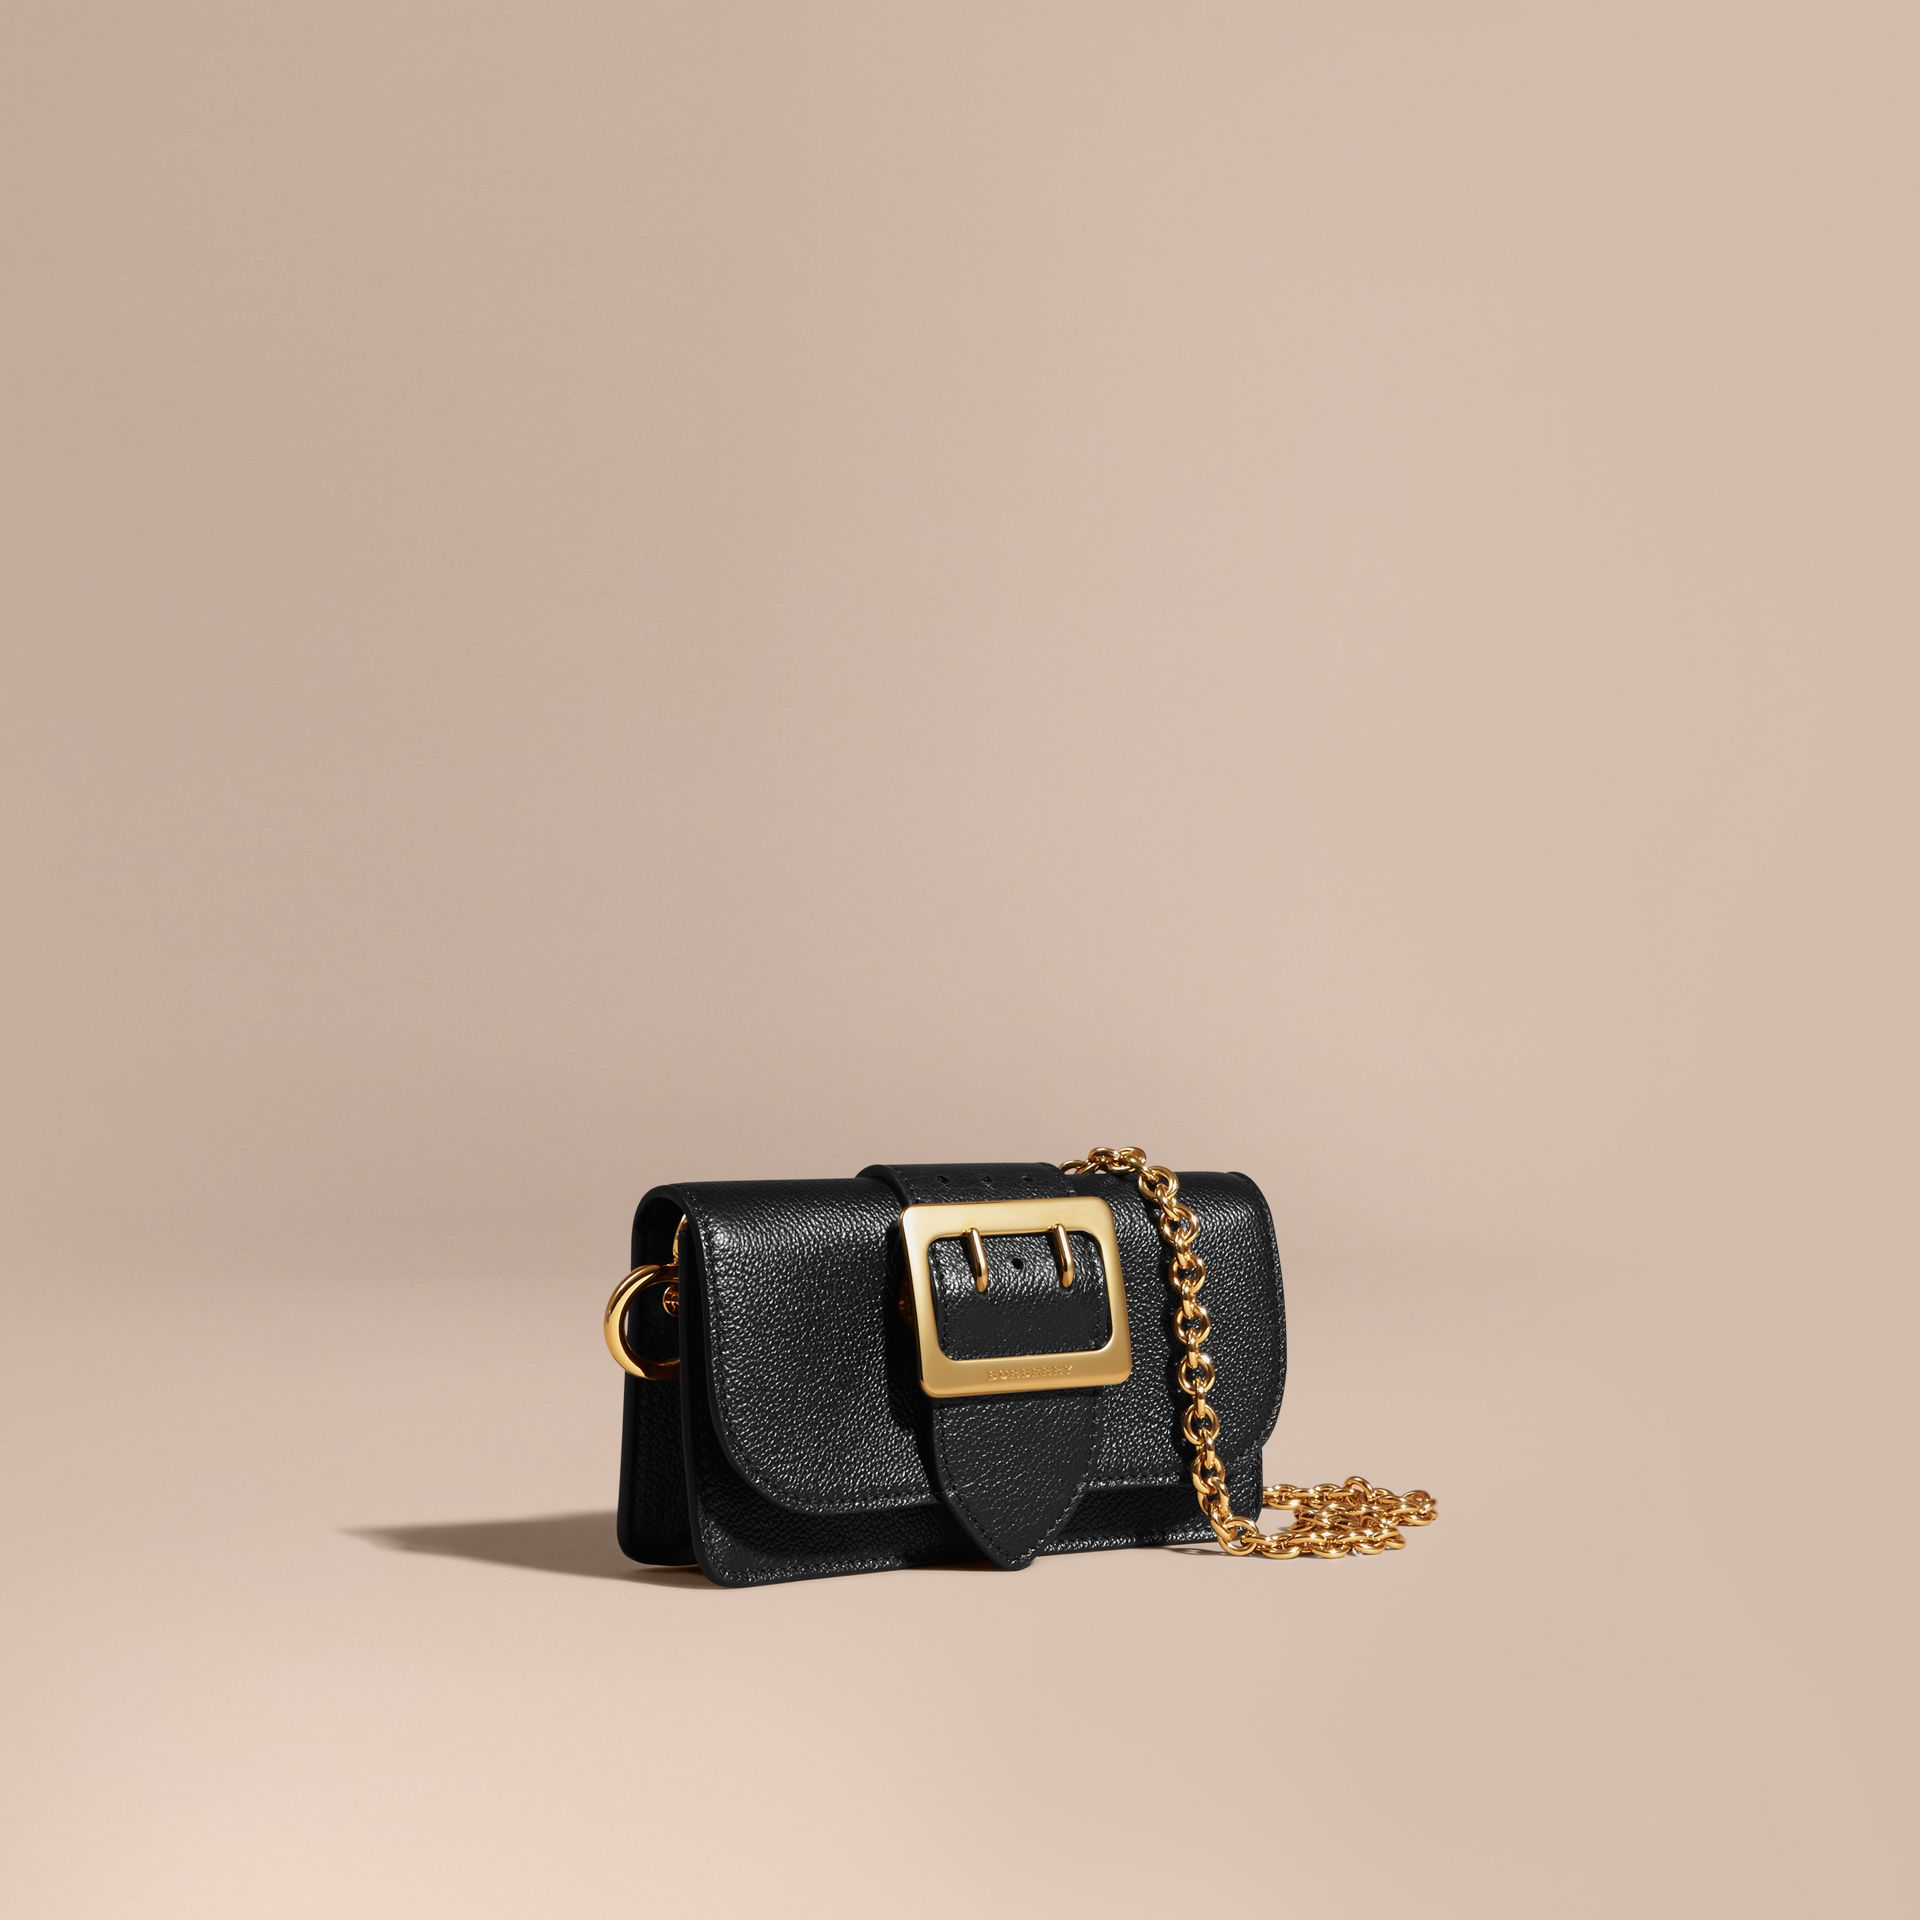 Black The Mini Buckle Bag in Grainy Leather Black - gallery image 1